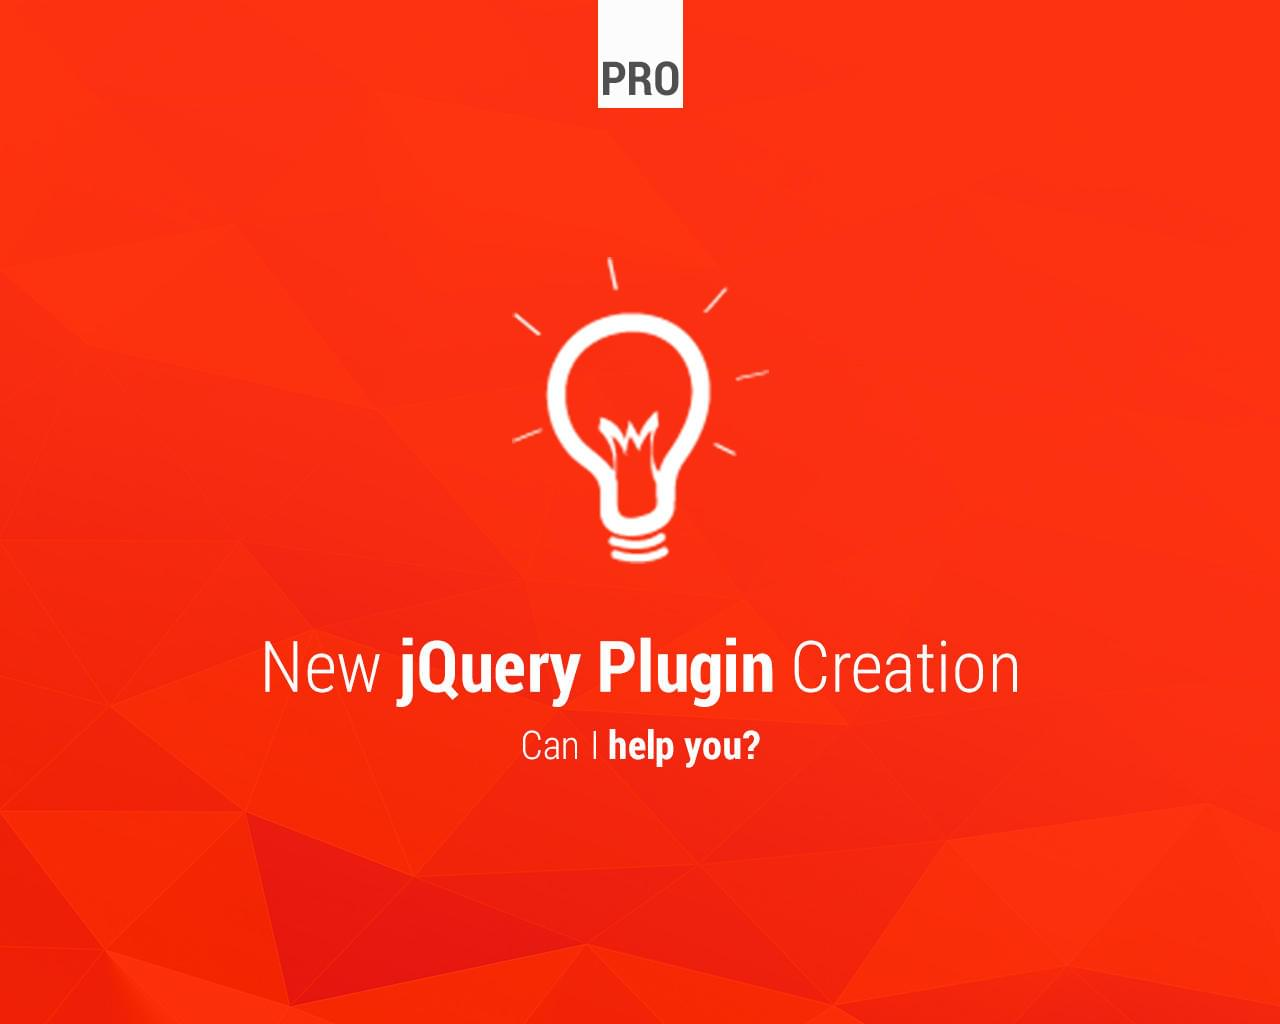 New jQuery Plugin Creation by Lukasz_Czerwinski - 113565